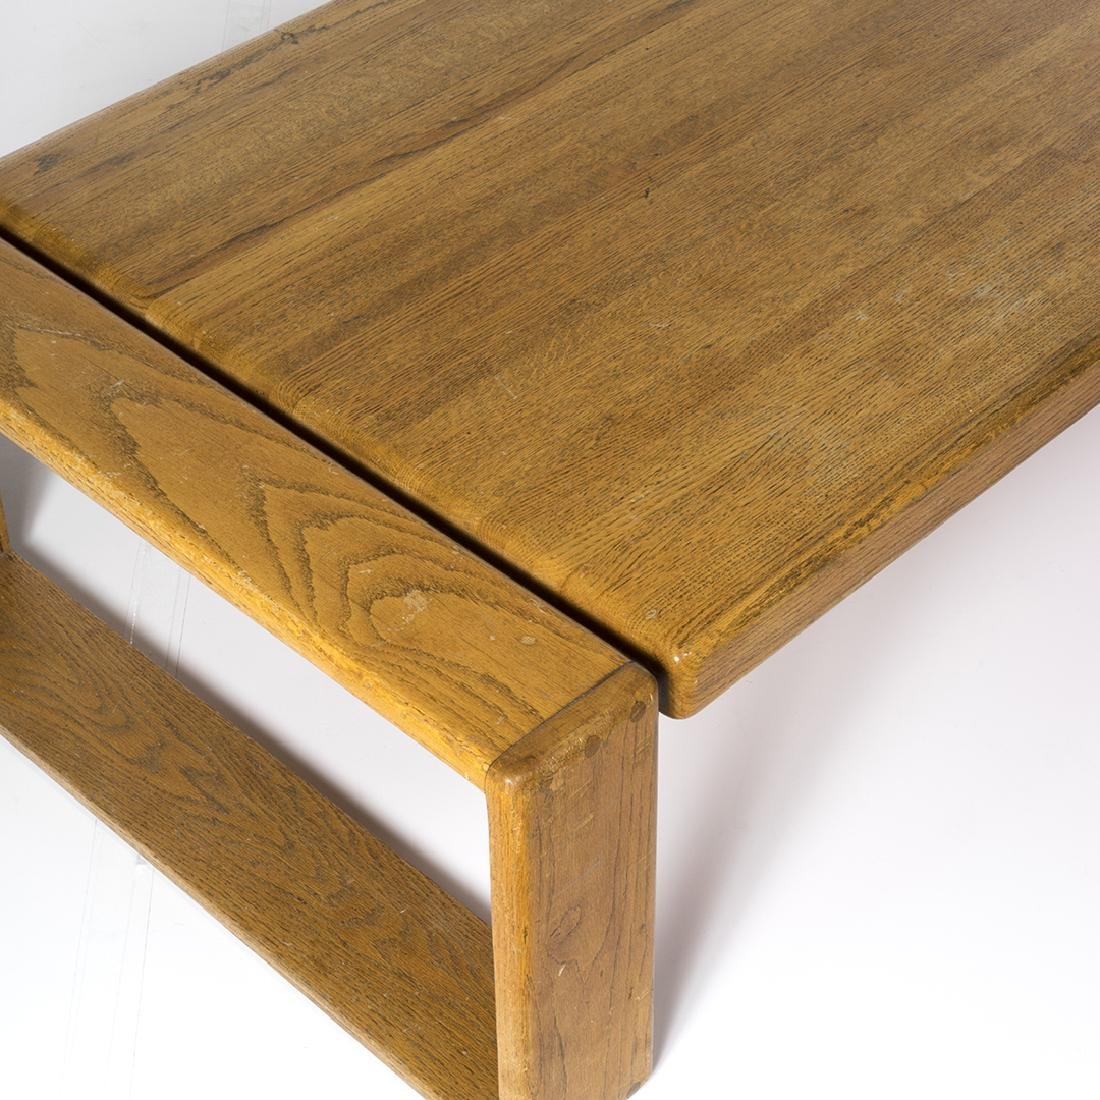 Lou Hodges Coffee Table - 3